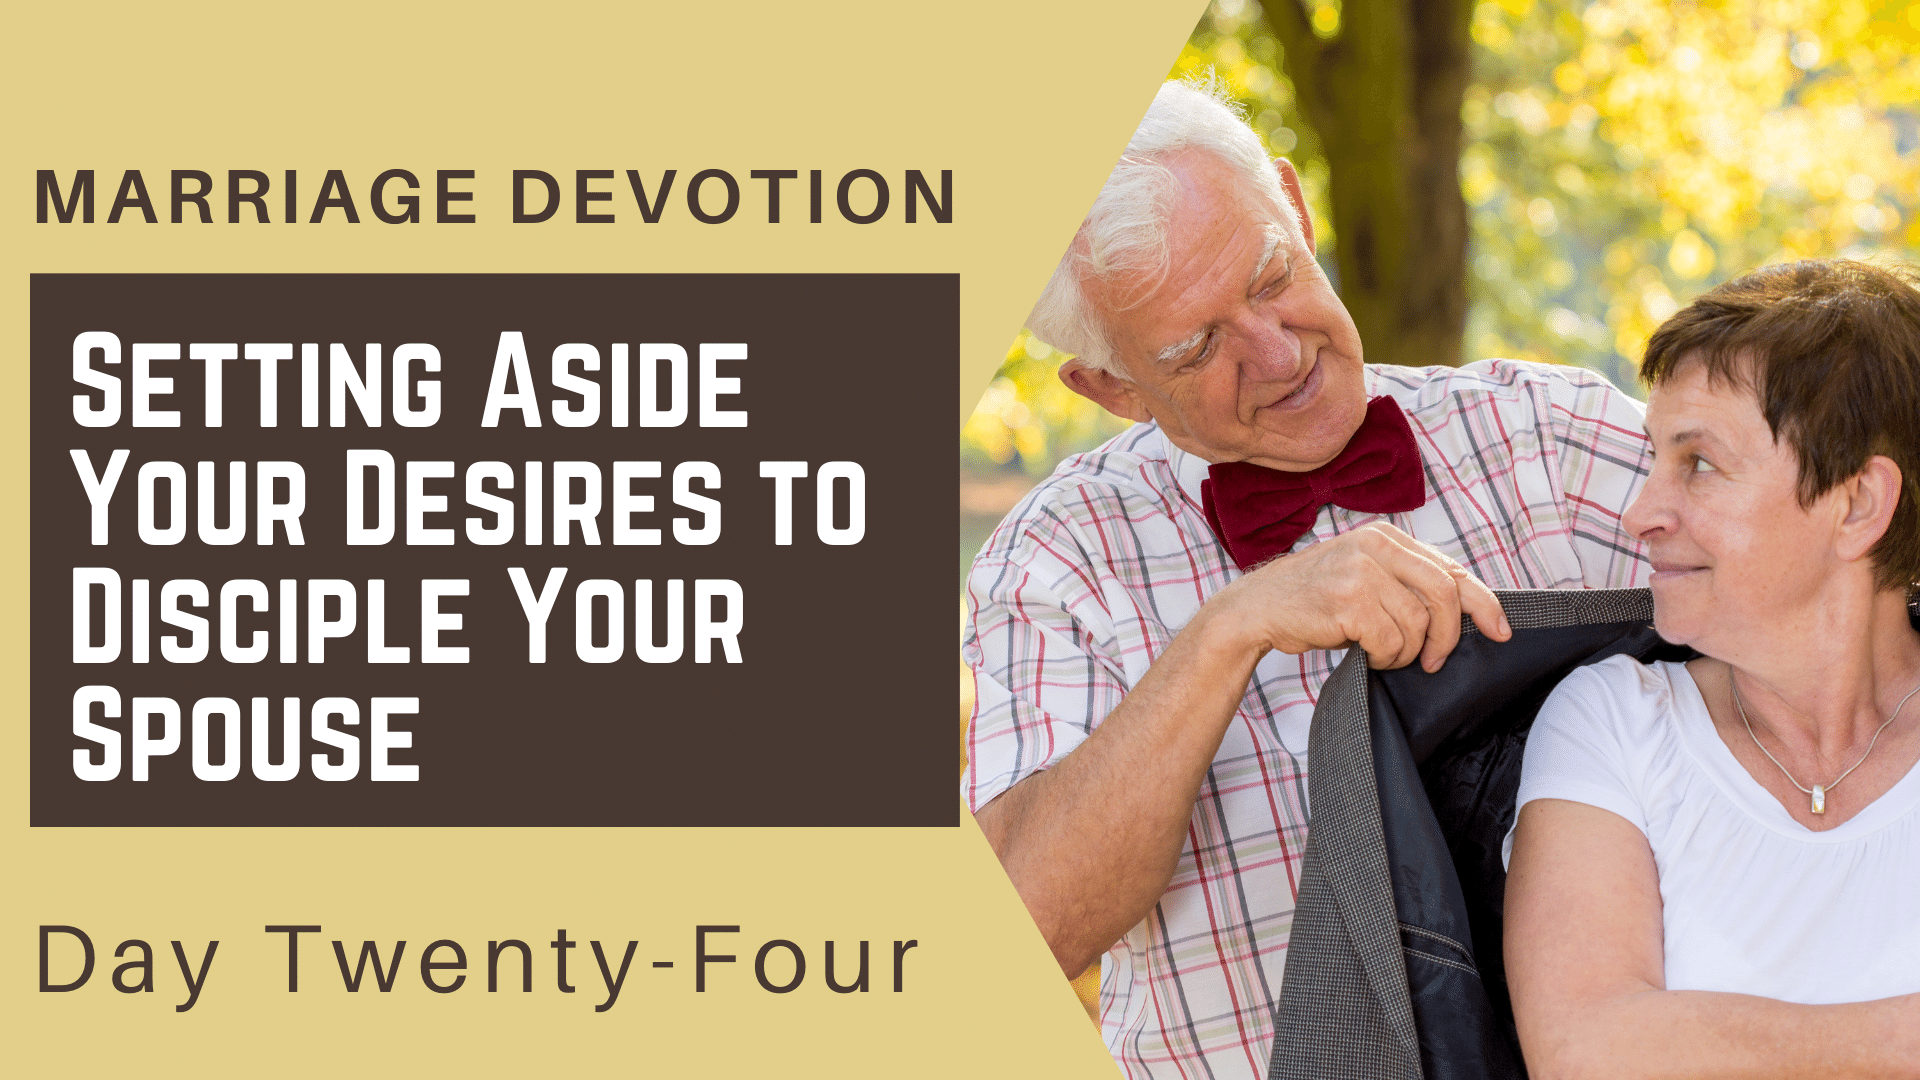 Marriage Devotion Day 24 – Setting Aside Your Desires to Disciple Your Spouse